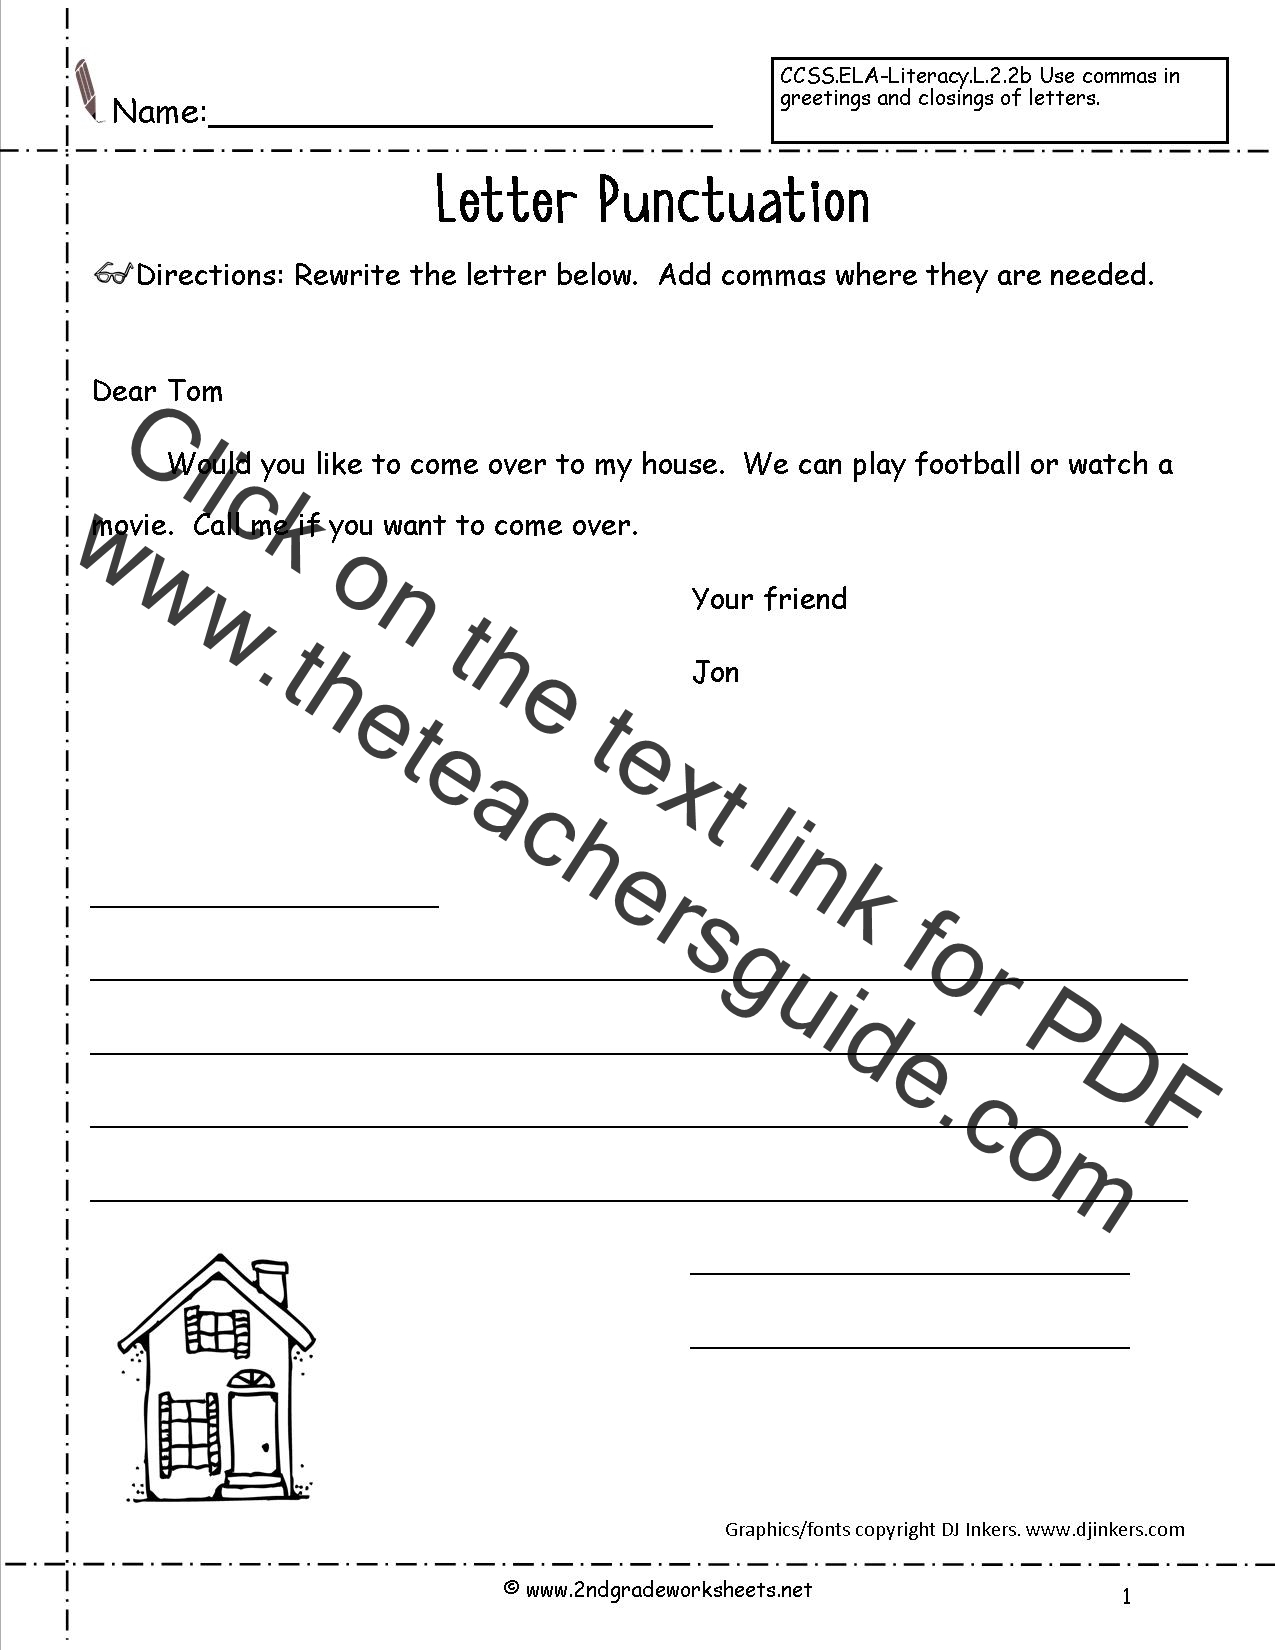 worksheet Punctuation Practice Worksheets letters and parts of a letter worksheet friendly punctuation